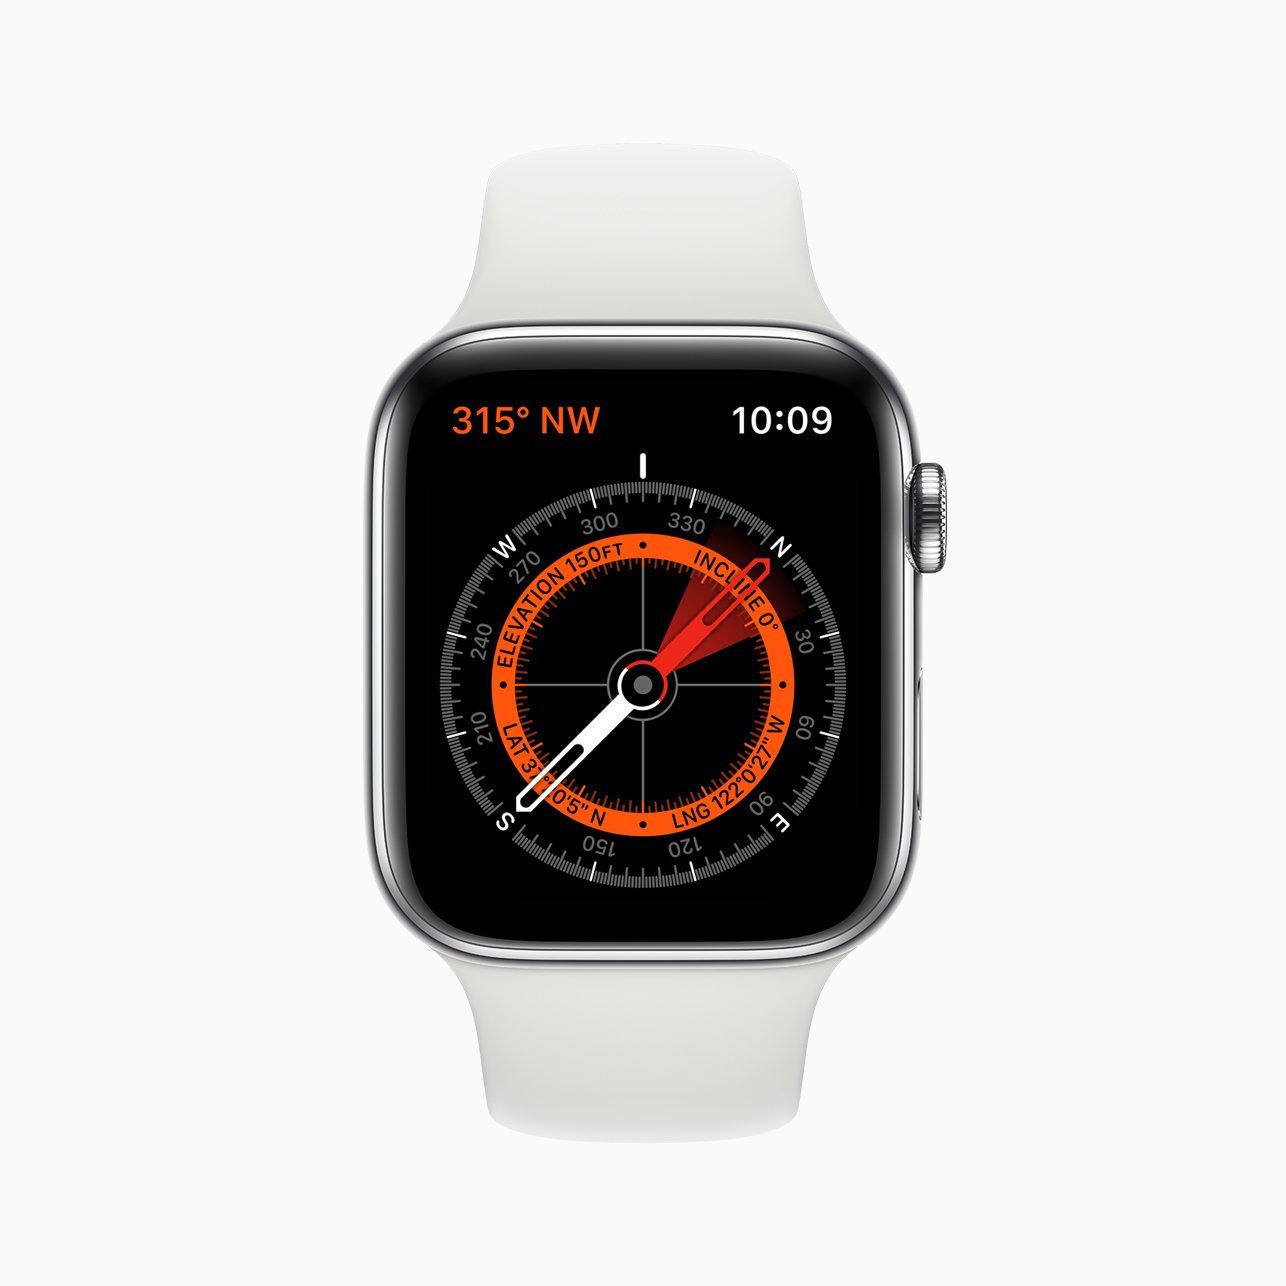 COMPASS: Apple Watch Series 5 includes a very clever compass.